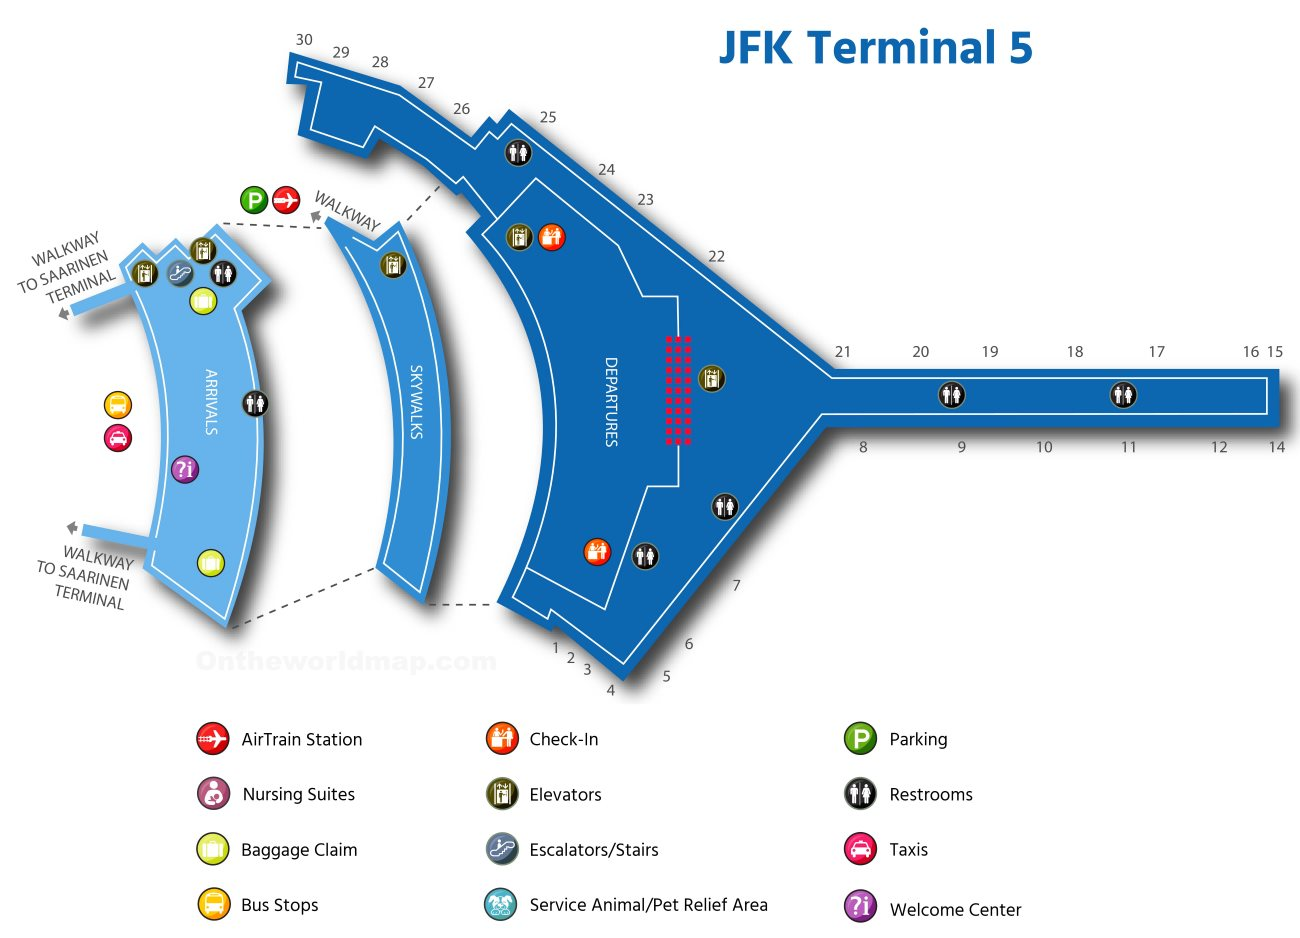 JFK Airport Terminal 5 Map